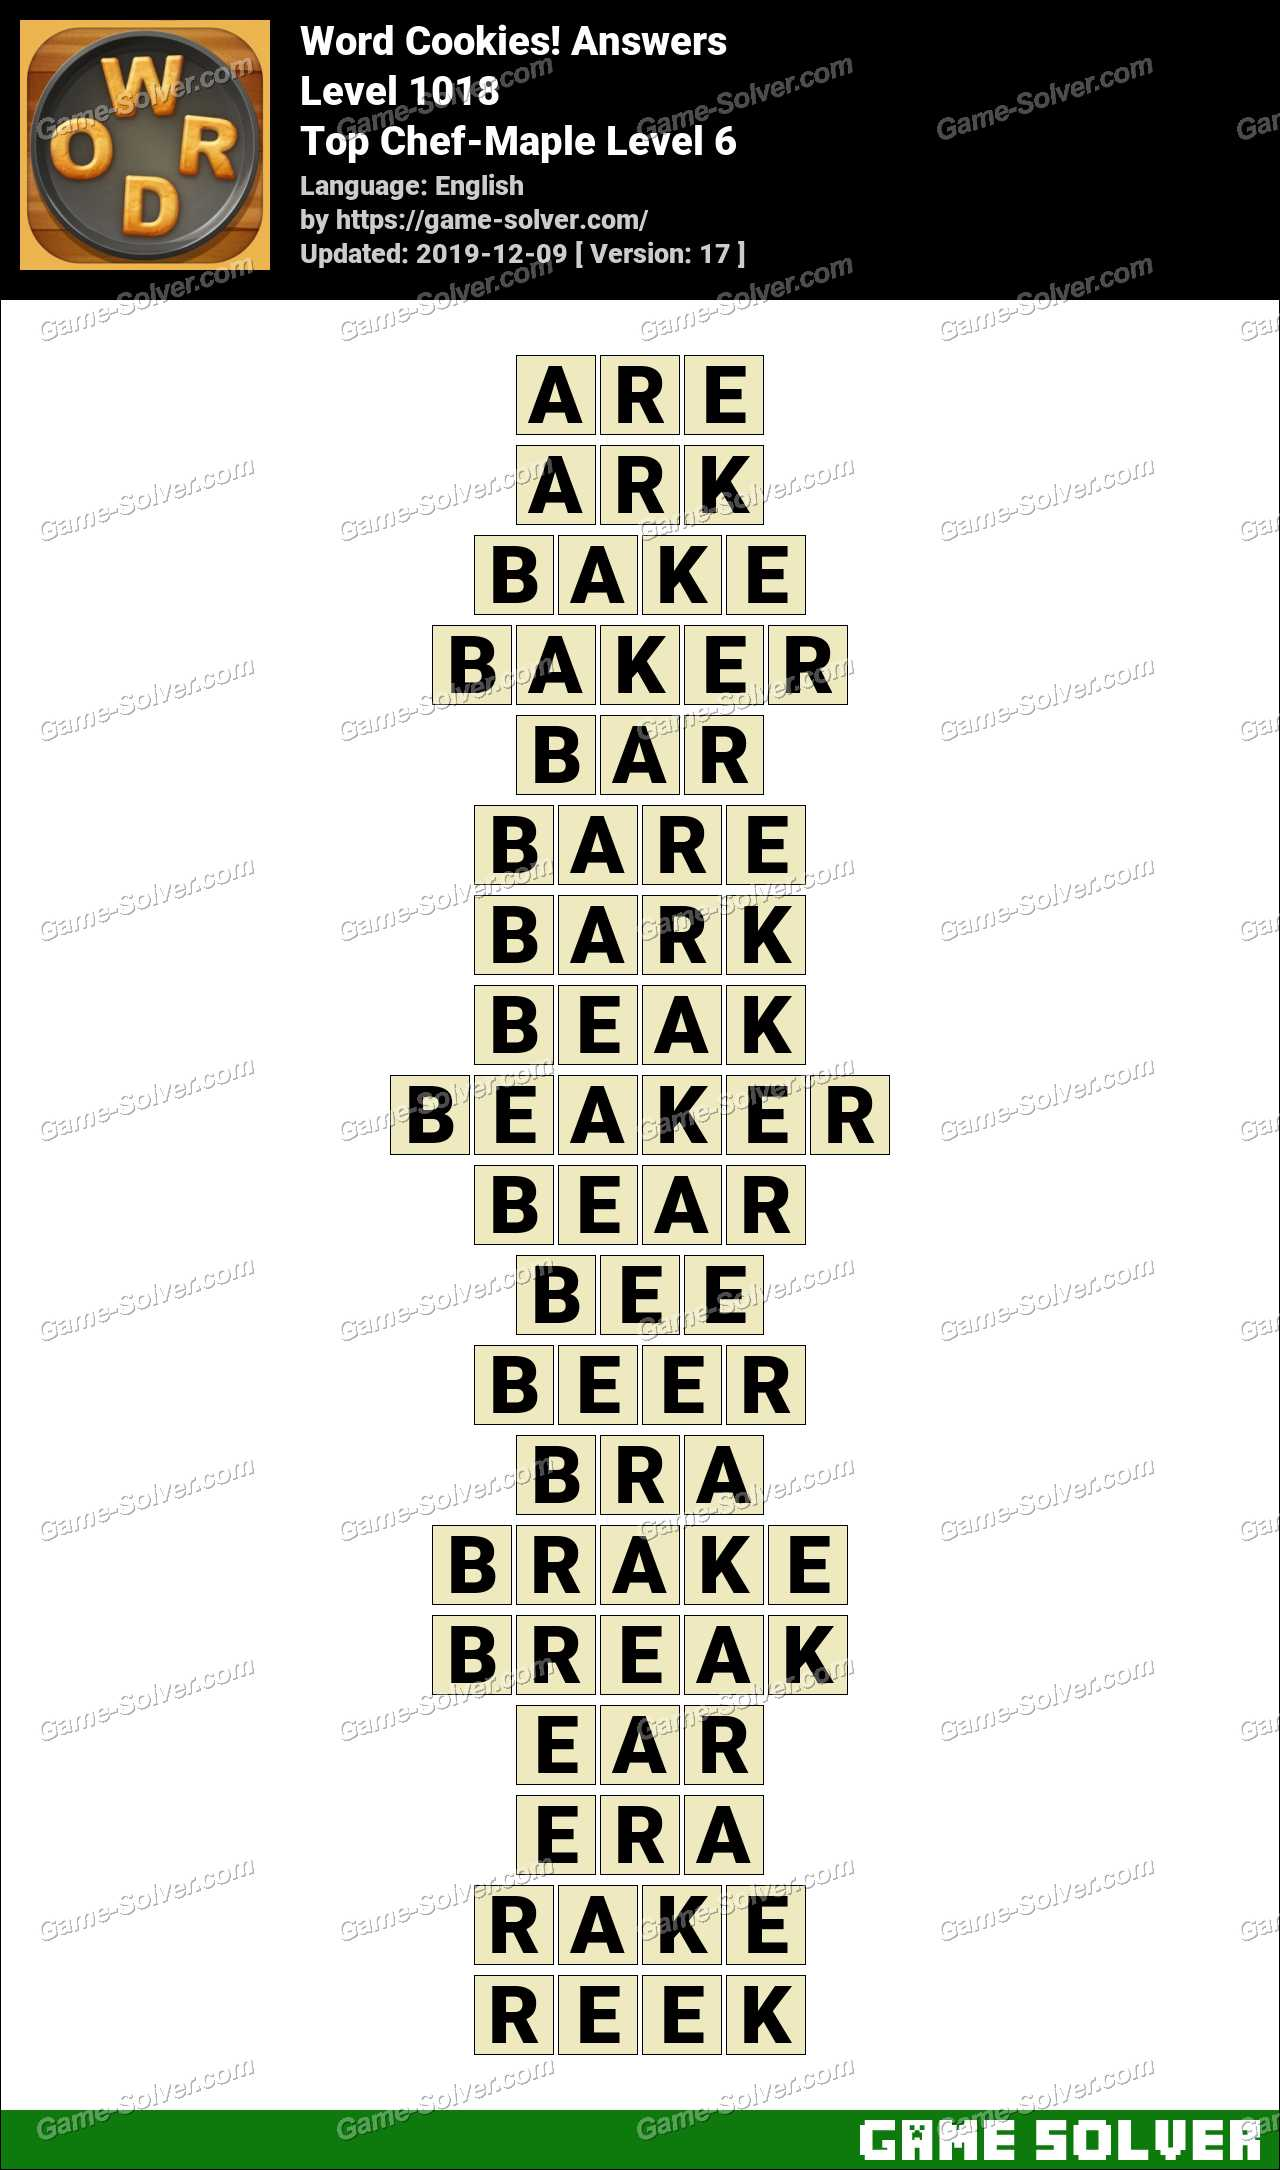 Word Cookies Top Chef-Maple Level 6 Answers